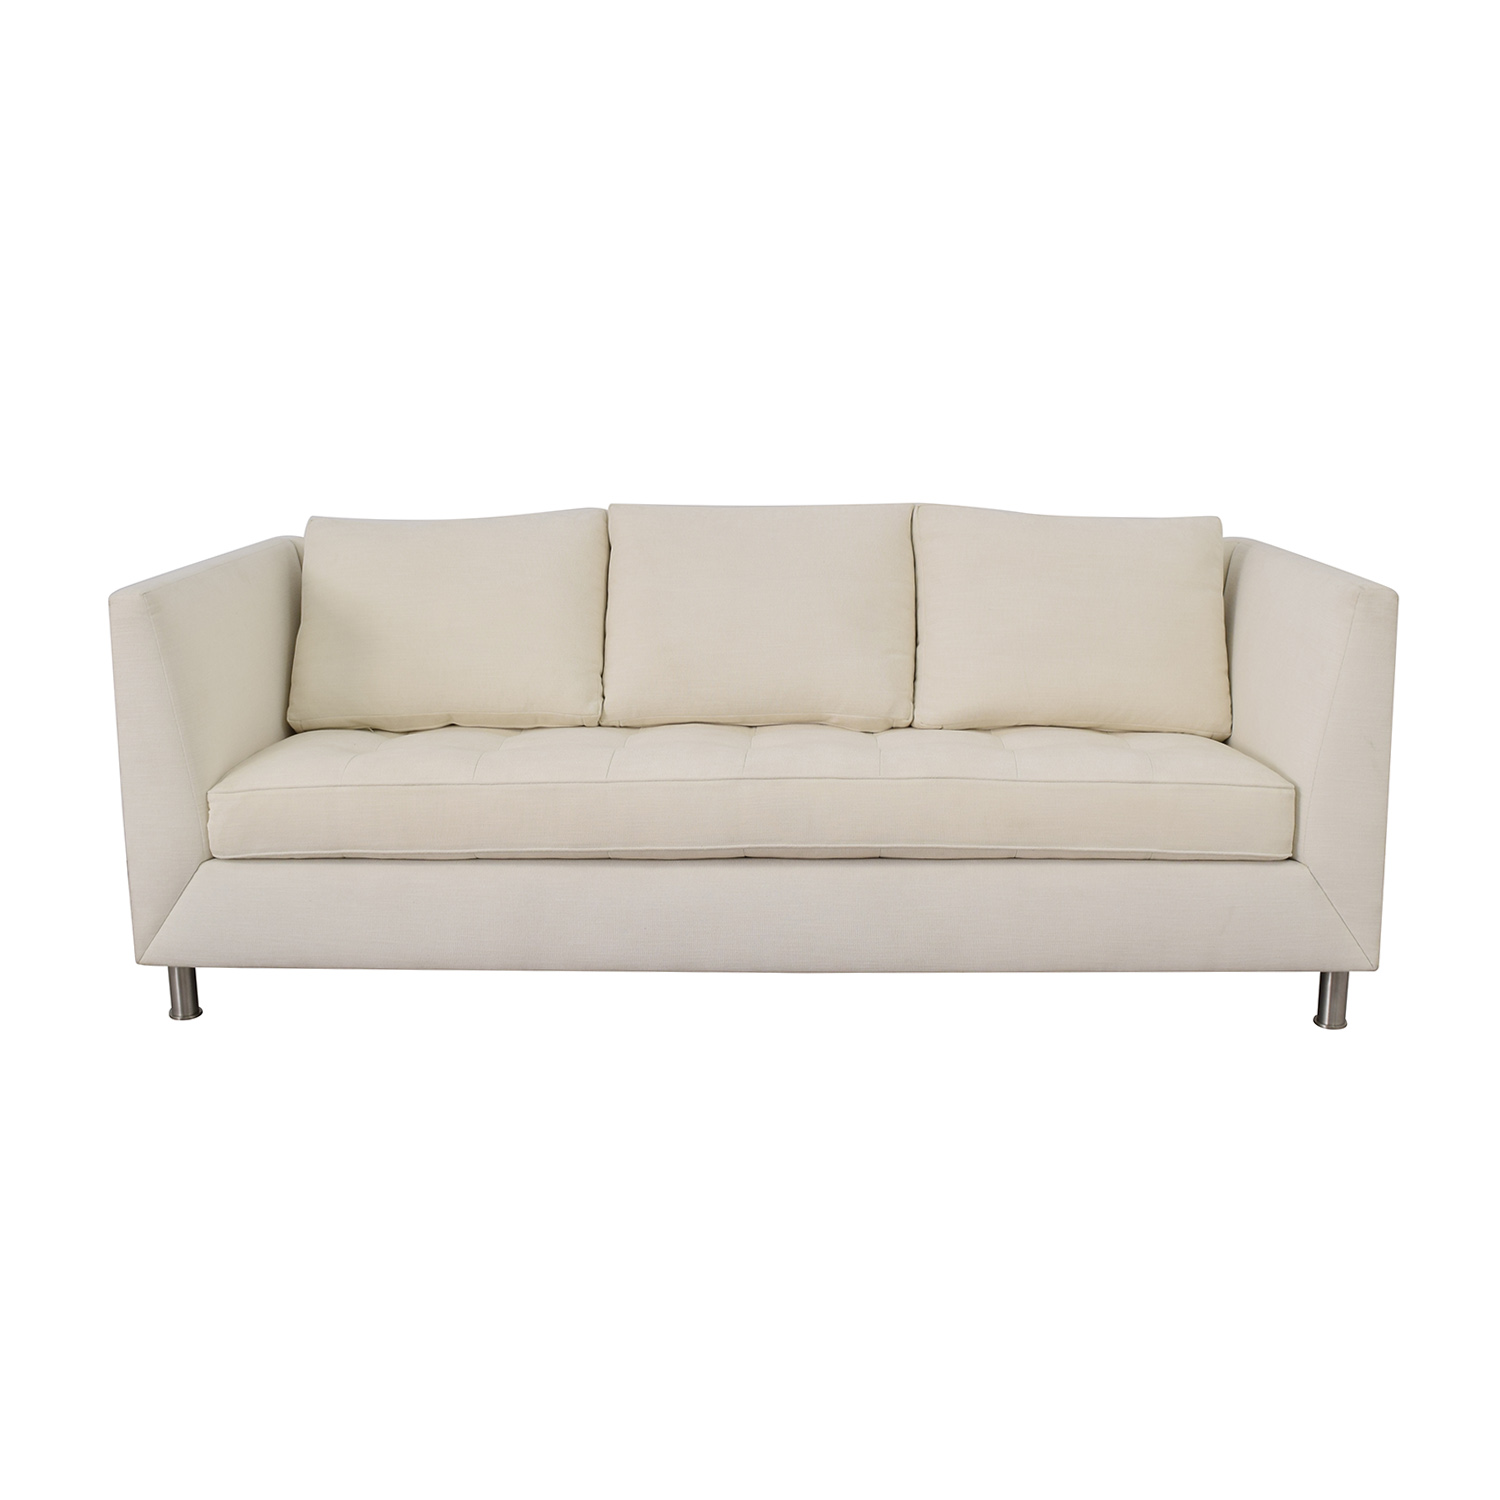 Furniture Masters Furniture Masters Beige Sofa nyc